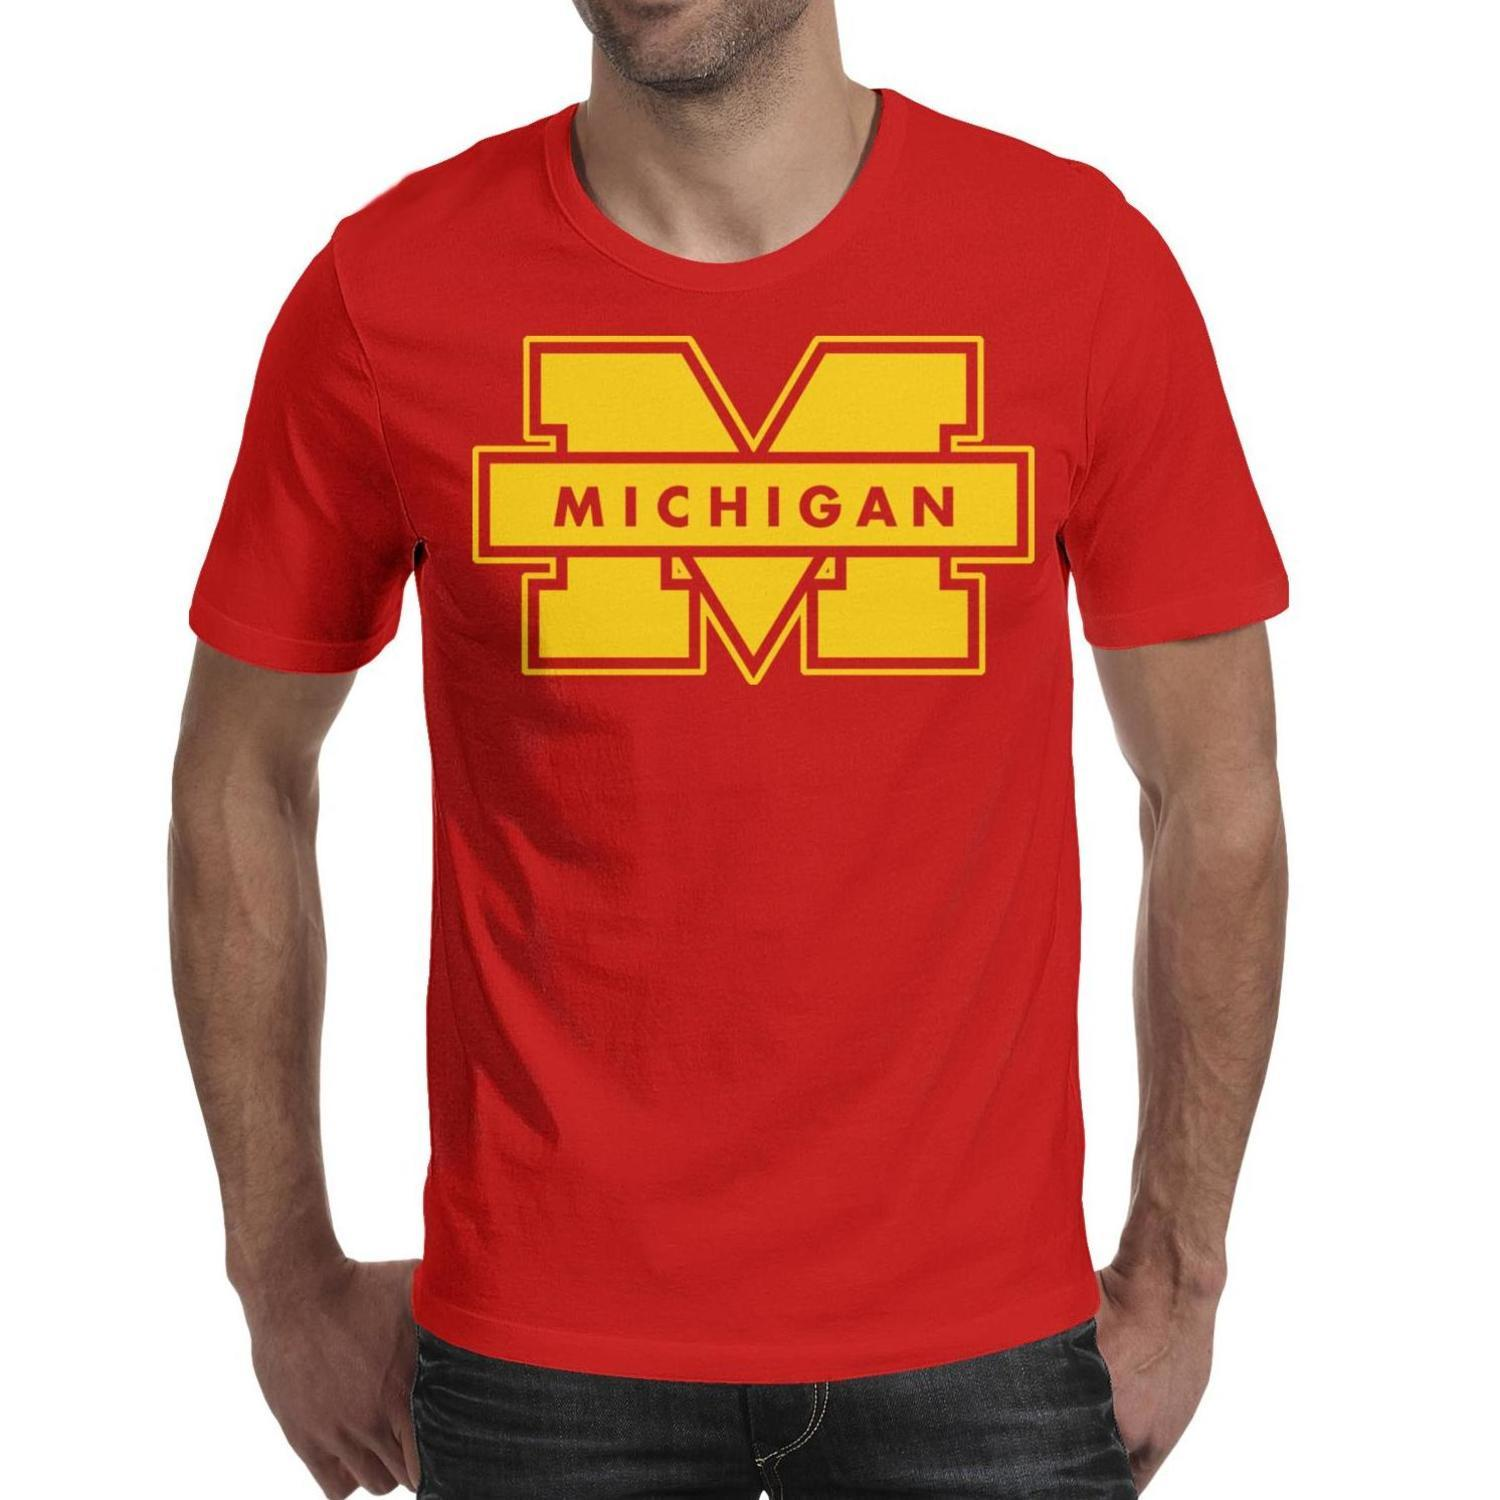 b7a26bc85 Michigan Wolverines football logo Man's T-Shirts Graphic Summer Cotton  Short Sleeve Shirts Best Man T Shirt Vintage T Shirts for Man